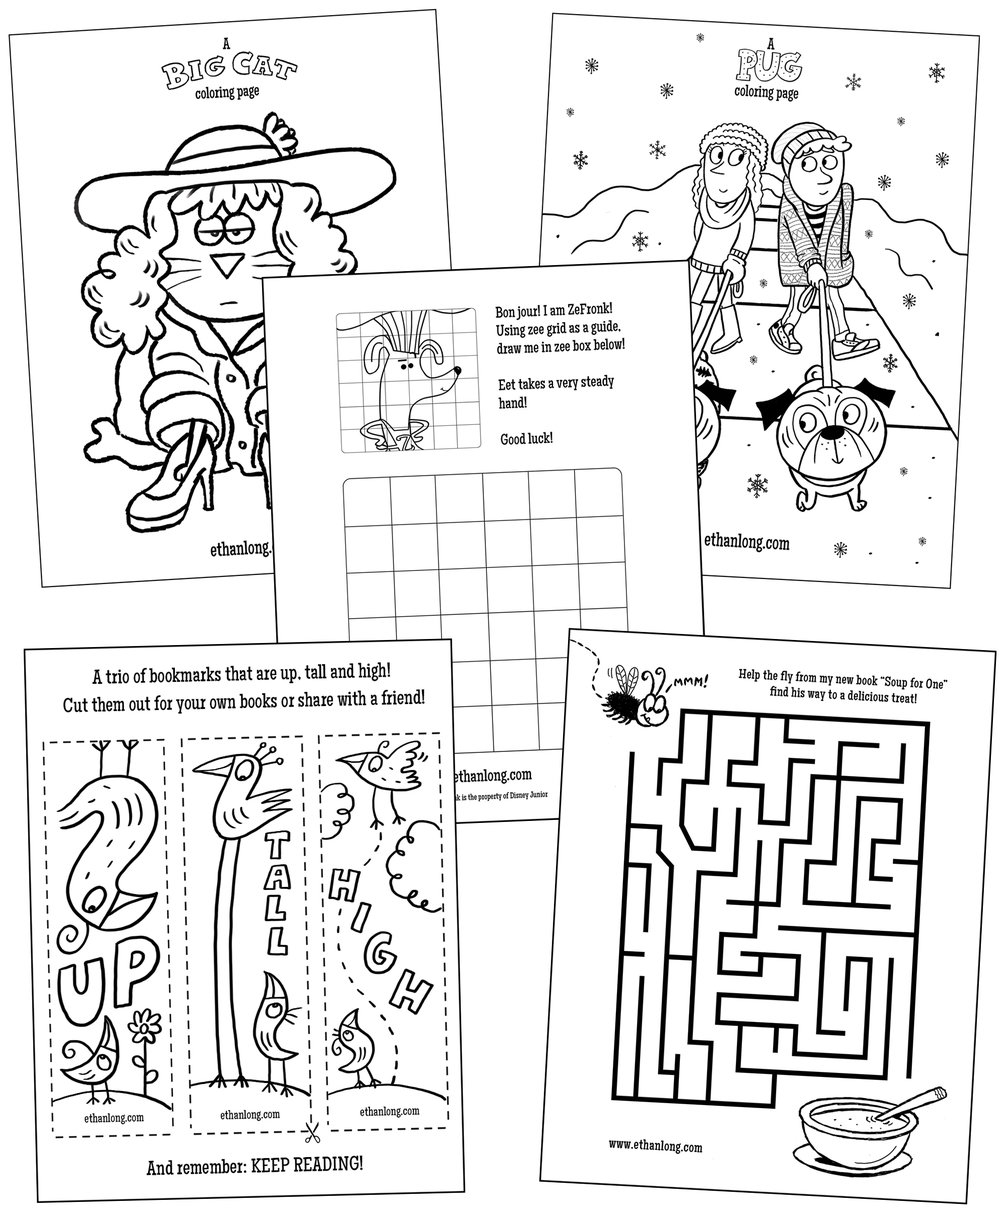 printable activity sheets.jpg